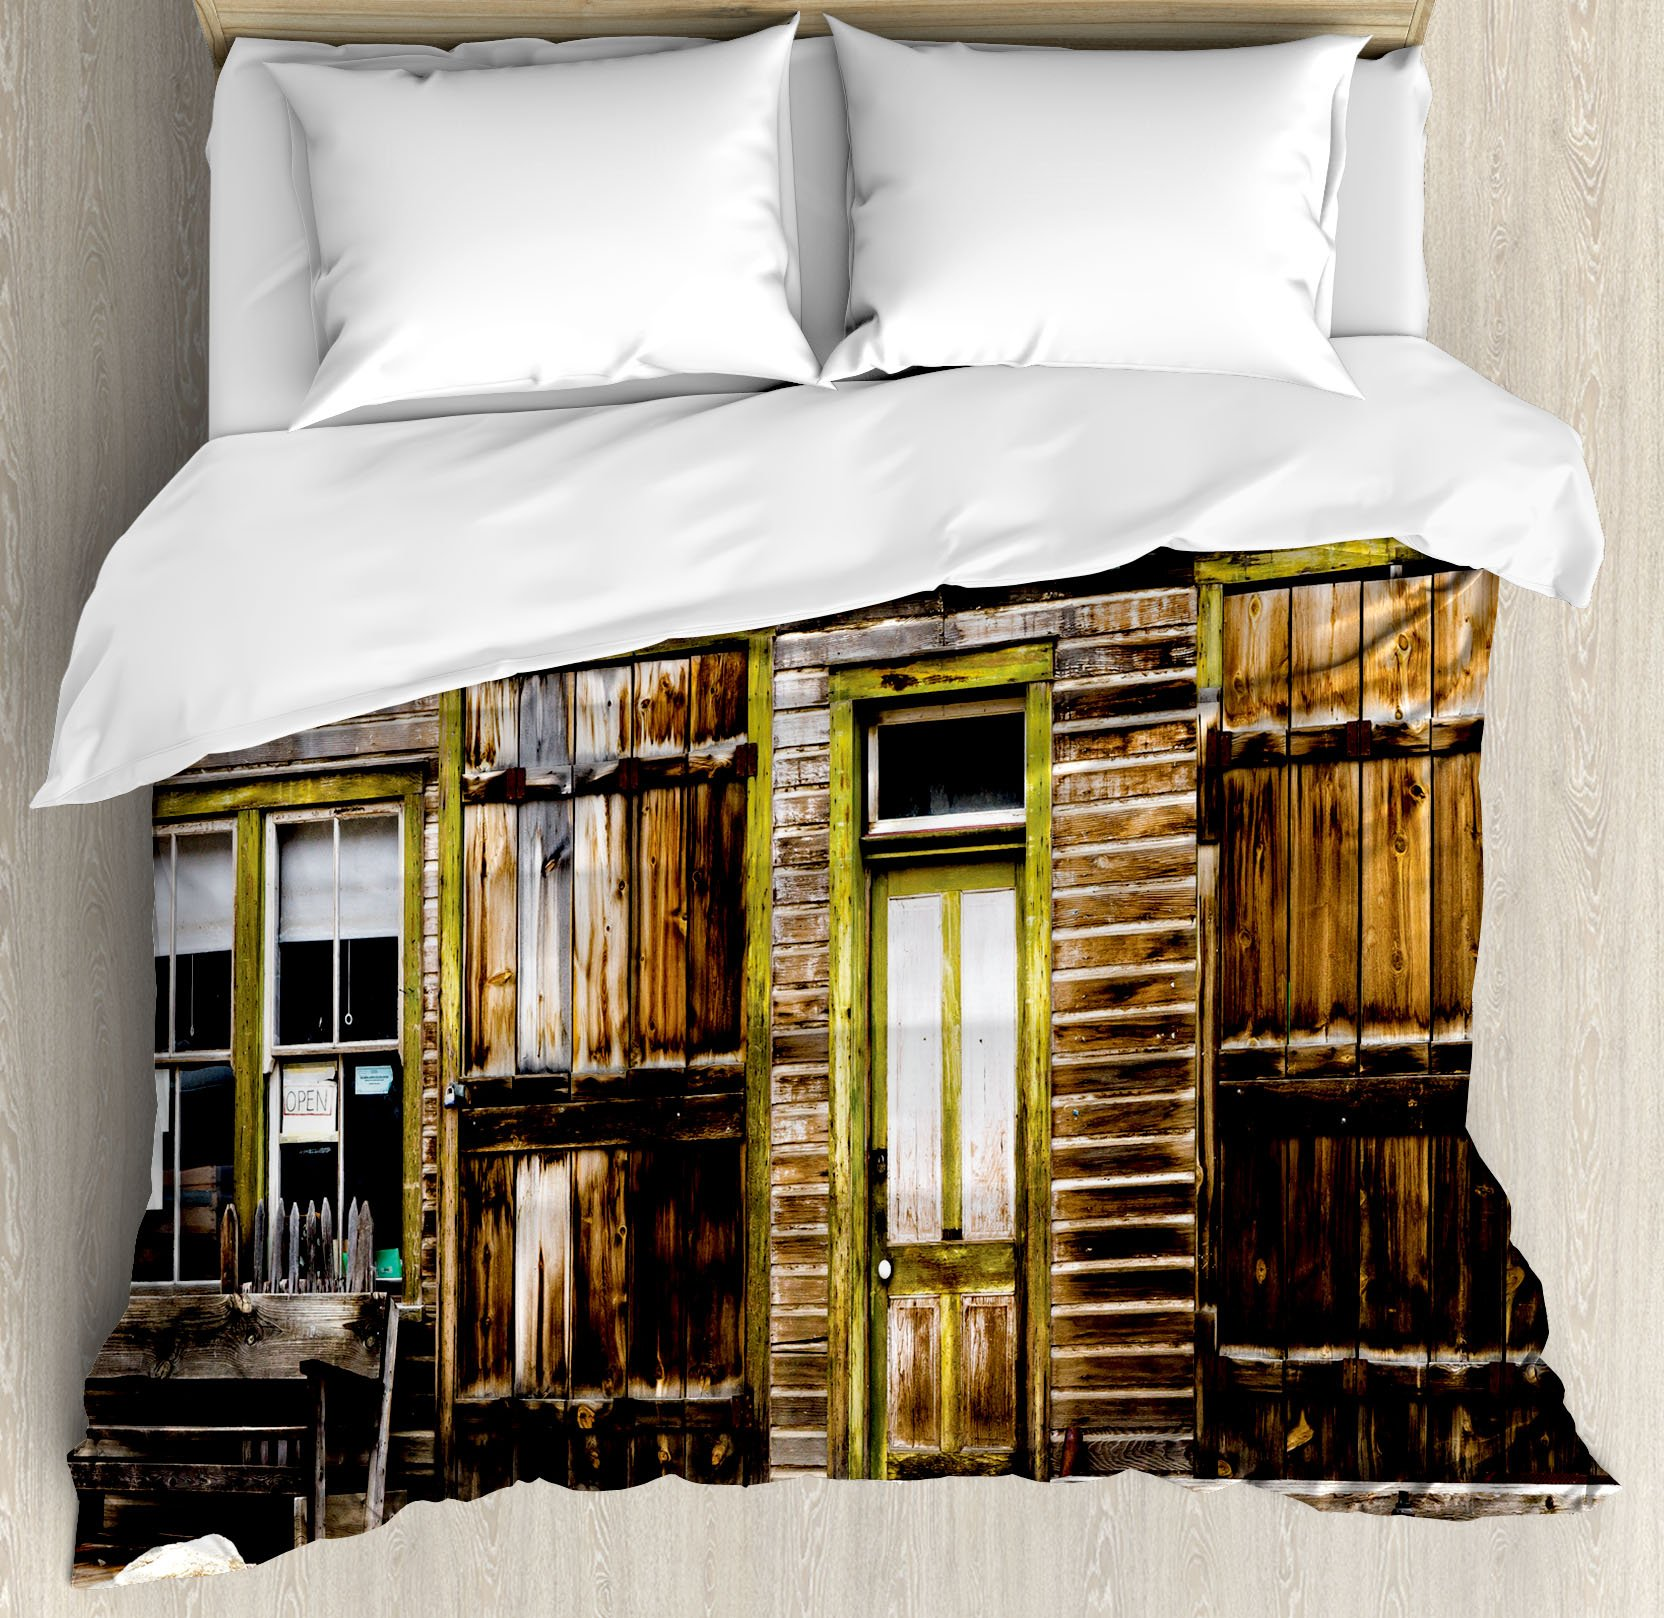 Rustic Decor Duvet Cover Set by Ambesonne, Old Wooden Plank House with Antique Door and Windows with Stones on Rocky Street, 3 Piece Bedding Set with Pillow Shams, King Size, Brown